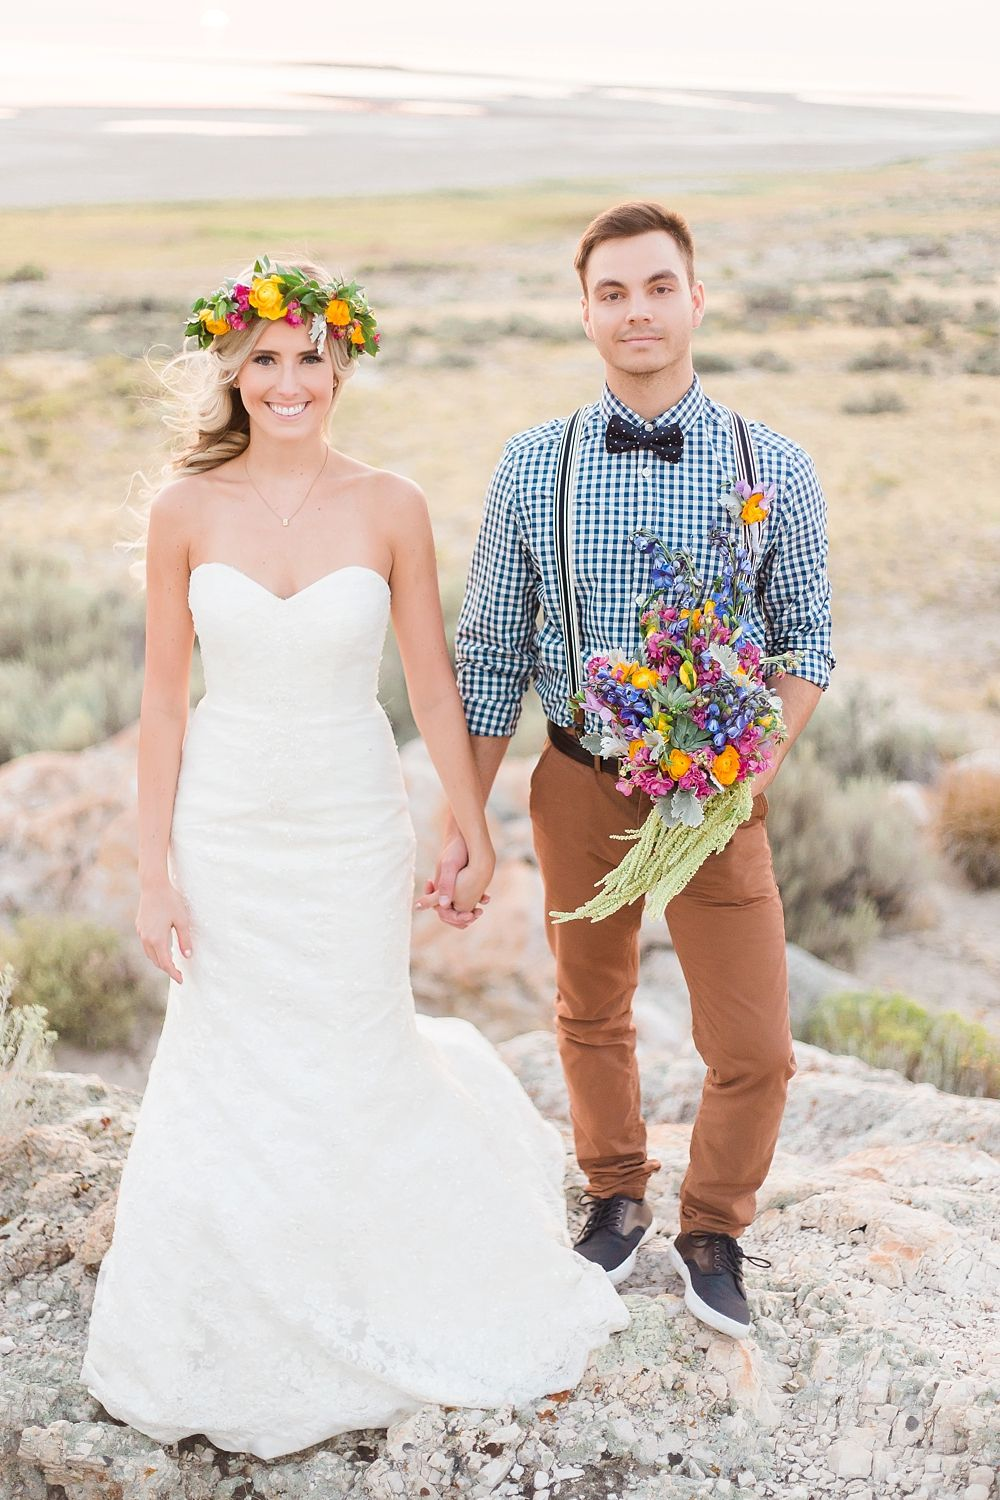 Makinzee + Alex | Kira Lynn Wagner | AK Studio & Design | Utah Wedding Photography | Bride & Groom Session | Antelope Island | Utah Bride | Wedding Inspiration